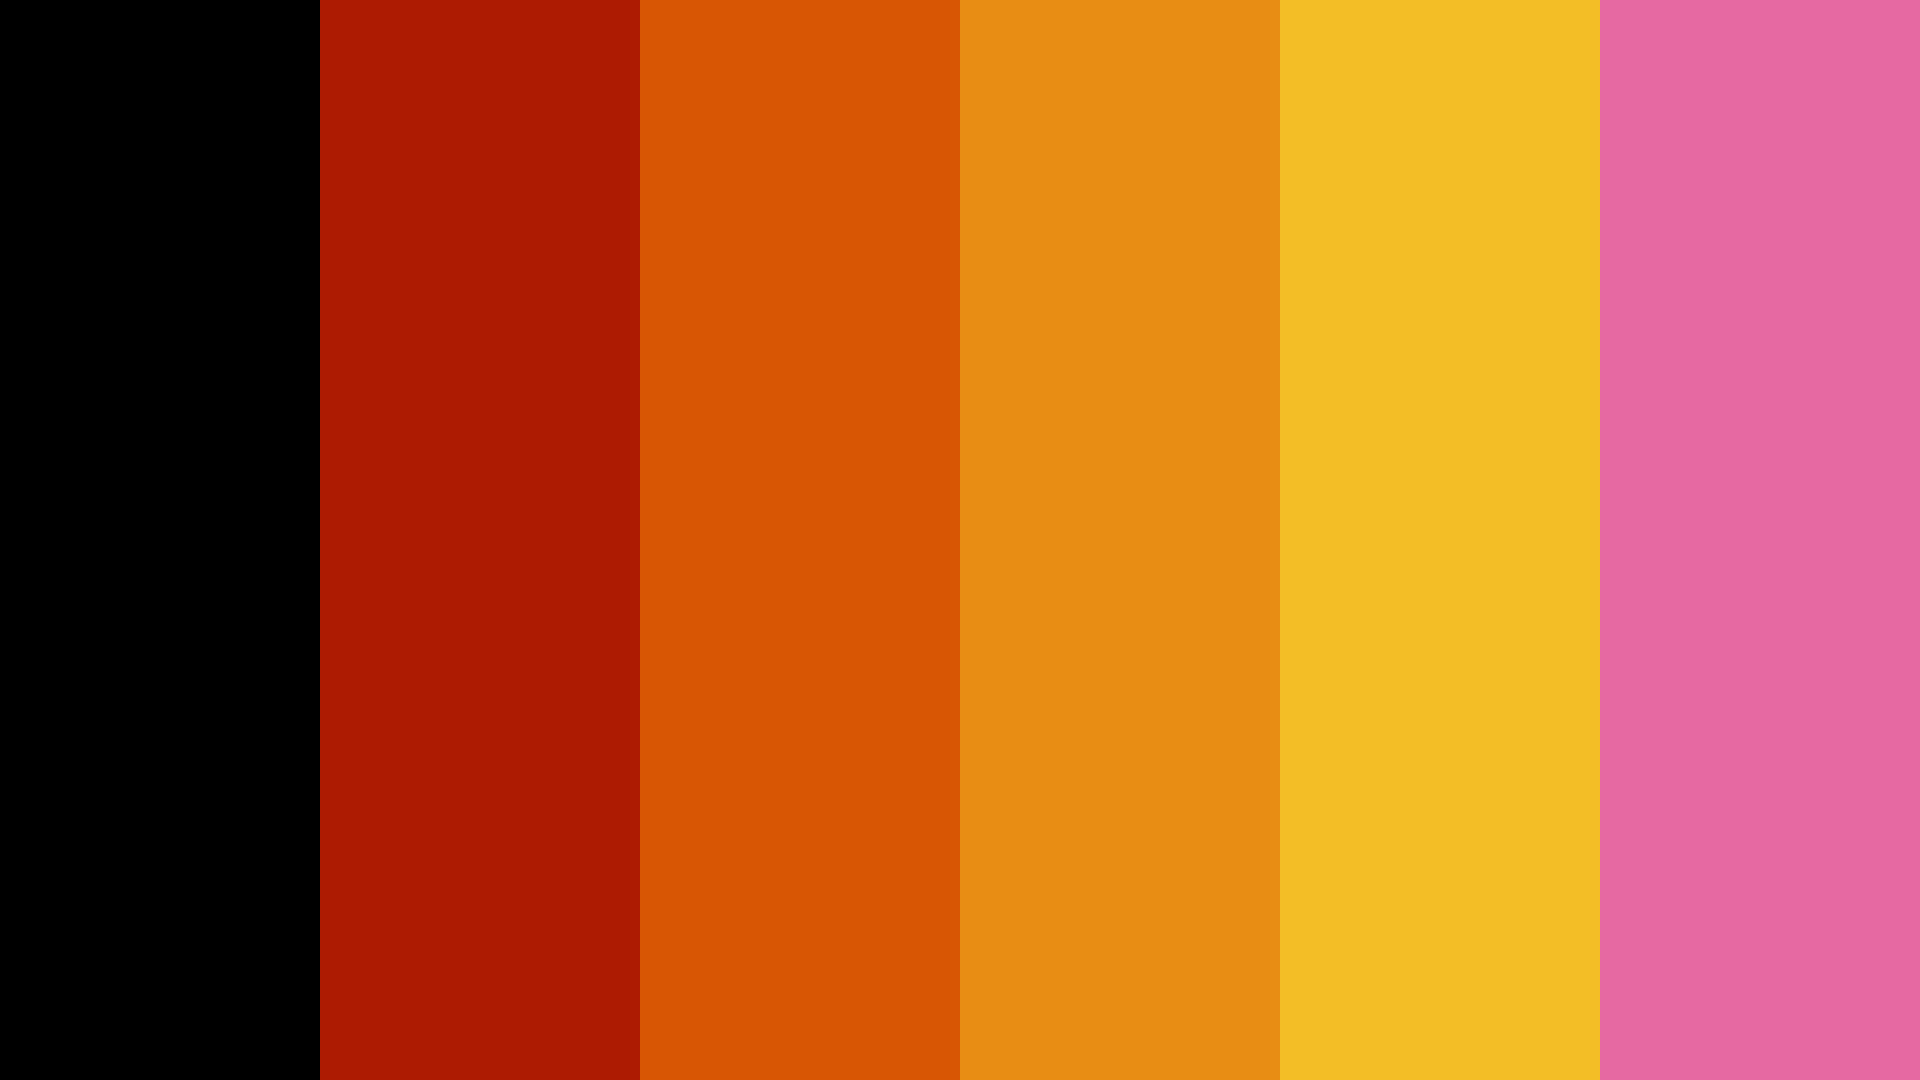 PricewaterhouseCoopers (PWC) Logo Color Palette